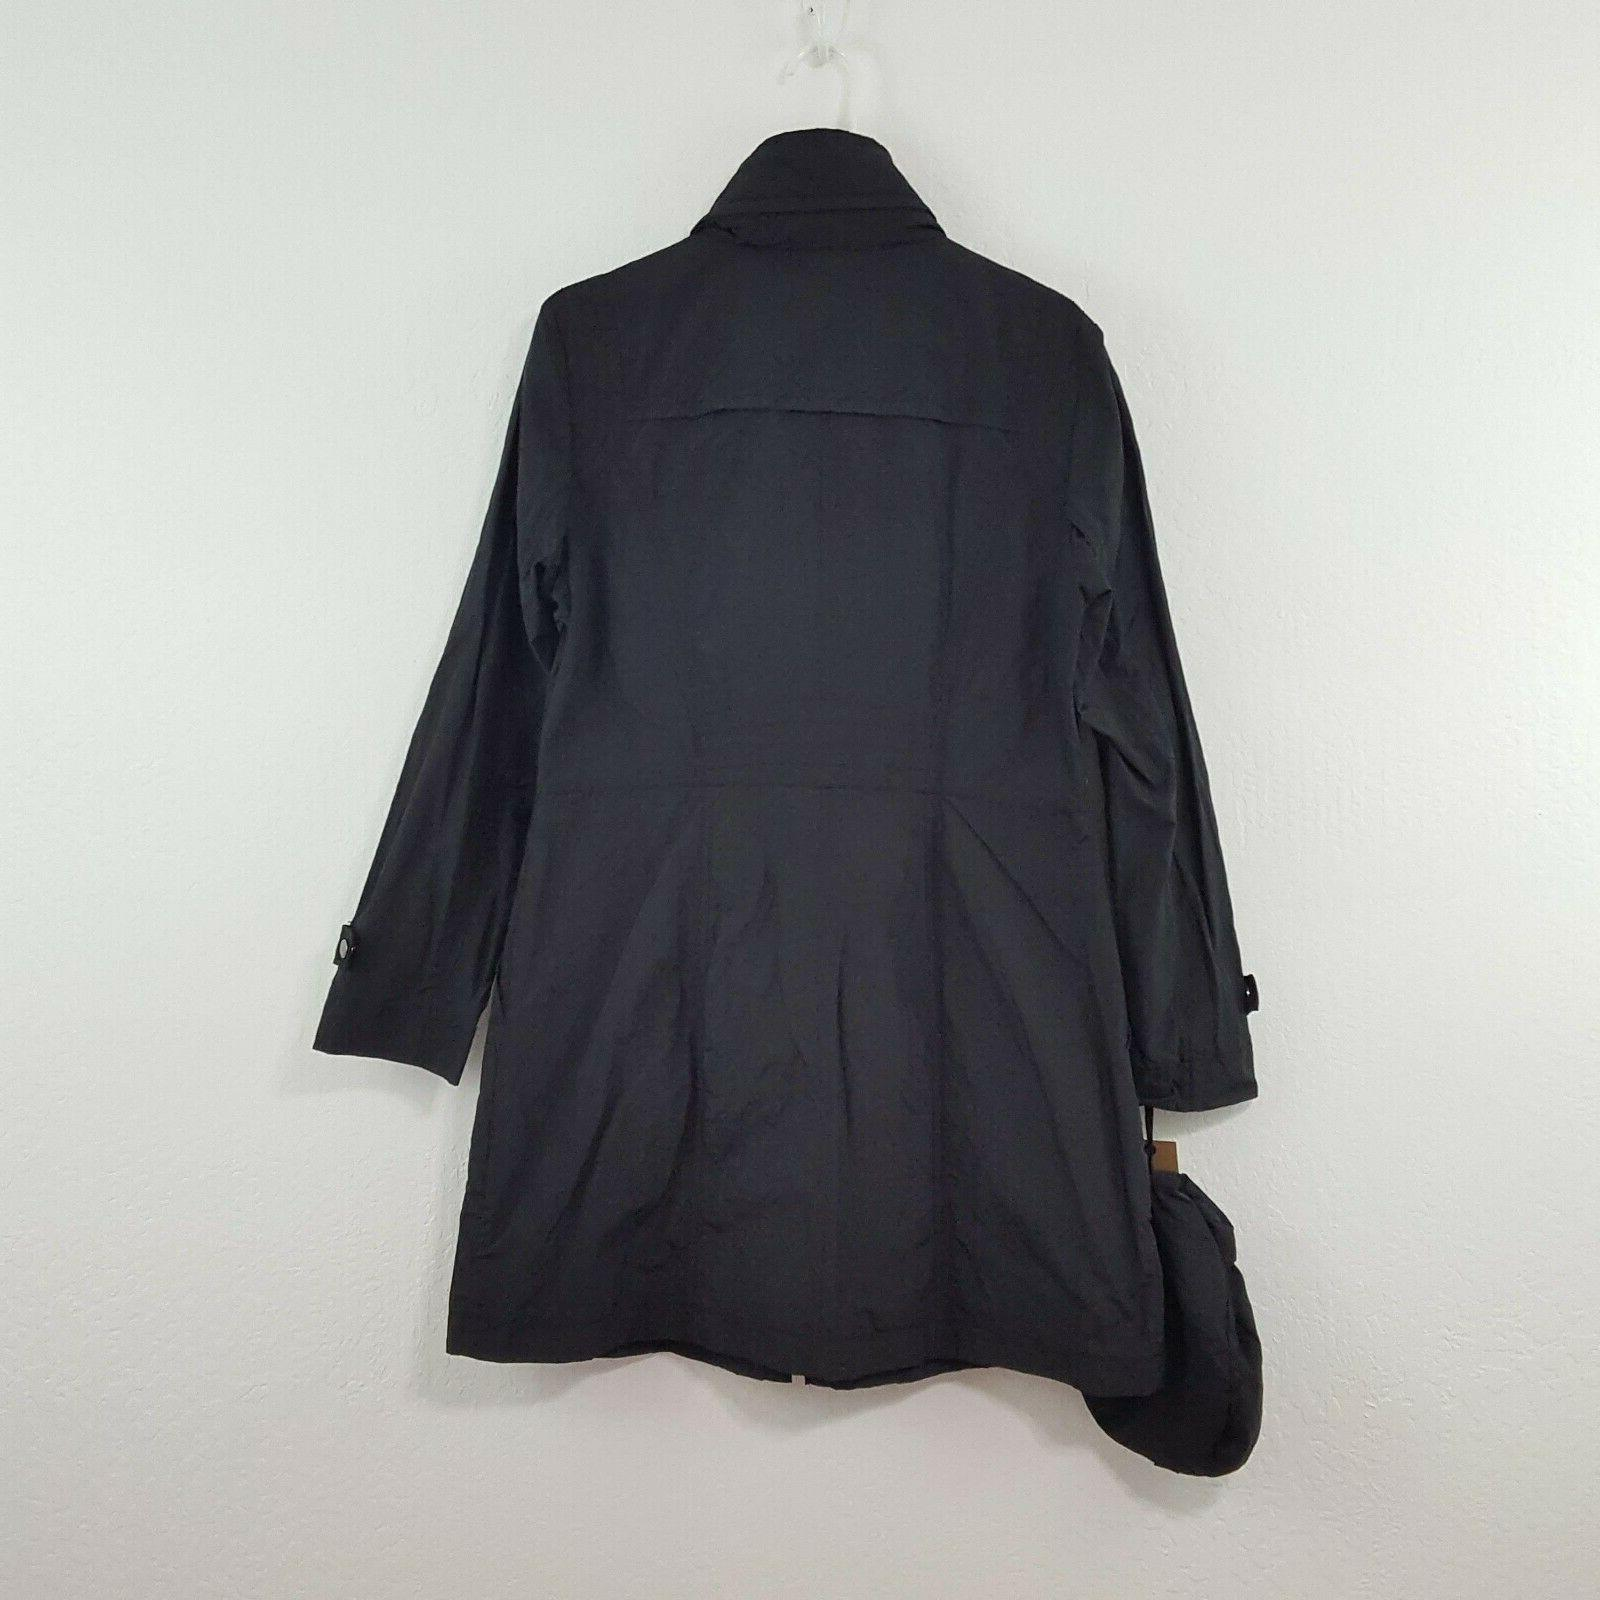 NWT Cole Haan Hooded Packable Size Large